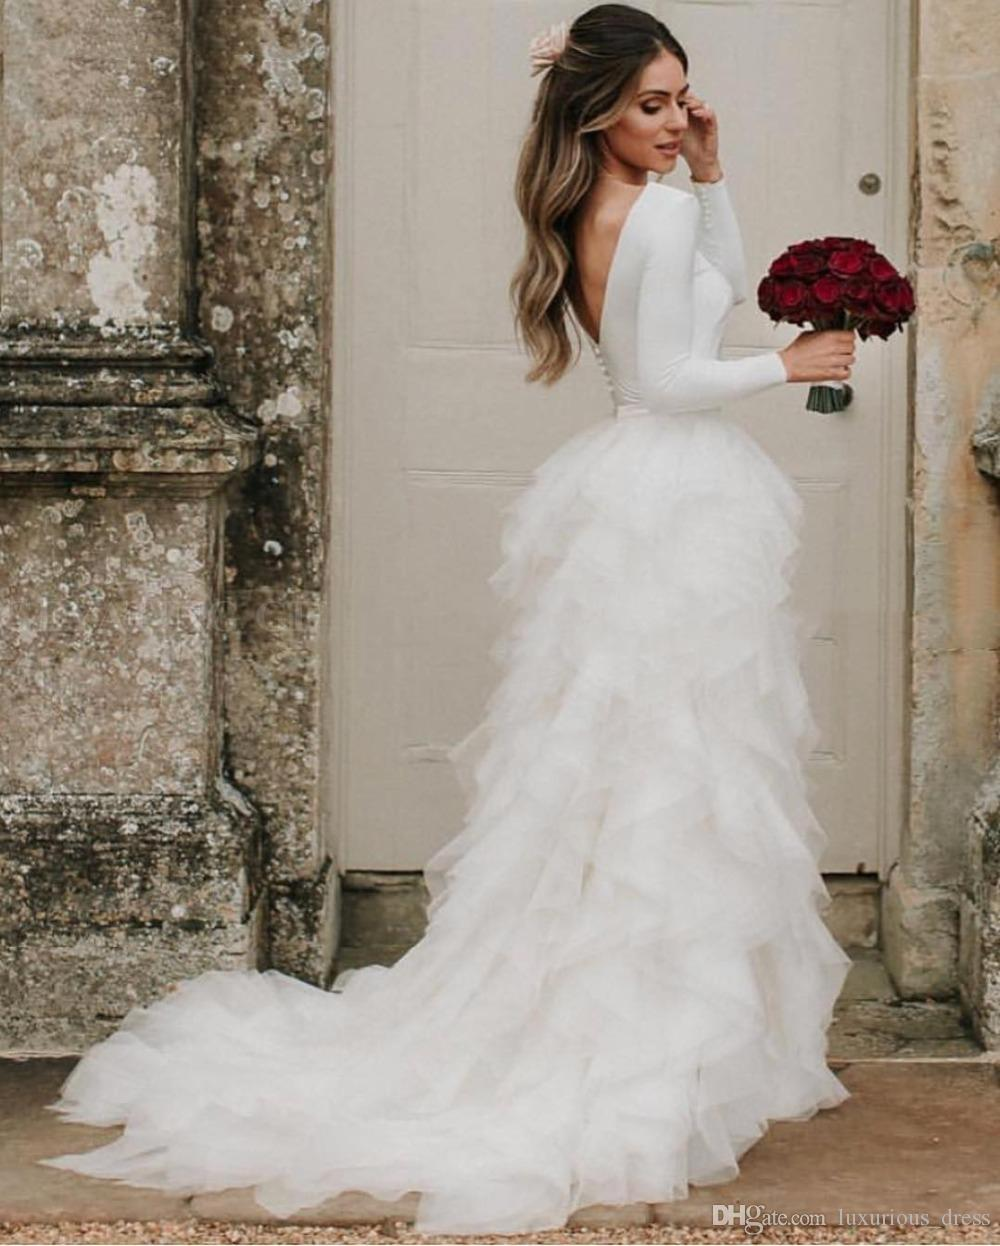 Rustic White Long Sleeve Country Wedding Dress 2019 Vintage Backless Ruffle Tiered Tulle Boho Beach Wedding Dresses Bridal Gowns